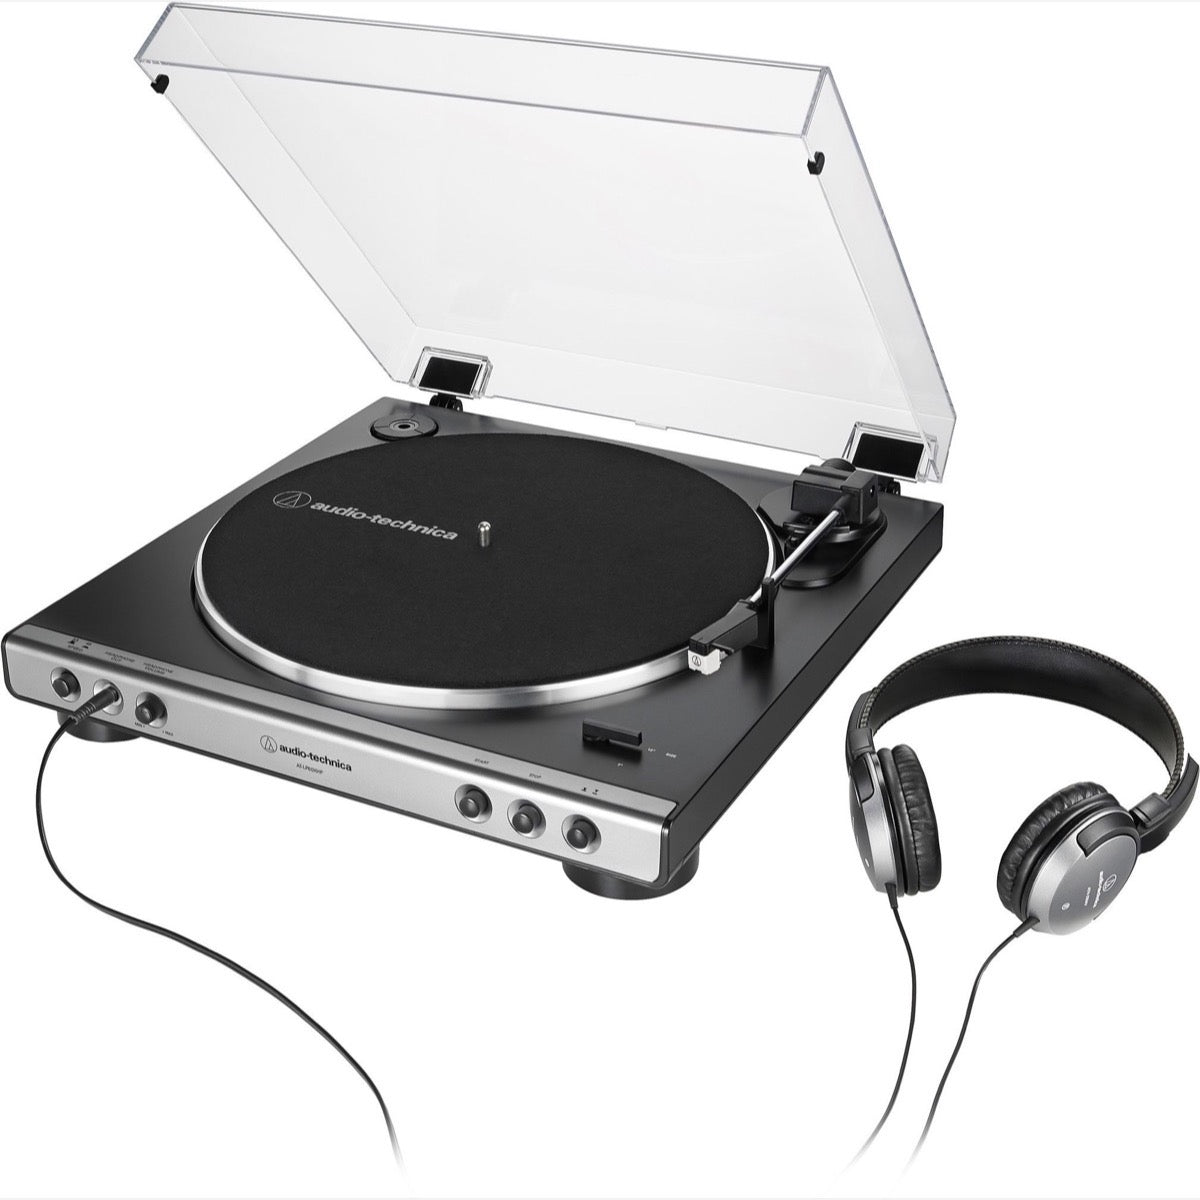 Audio-Technica AT-LP60XHP Belt-Drive Turntable + Headphones Combo Pack, Gray Metallic